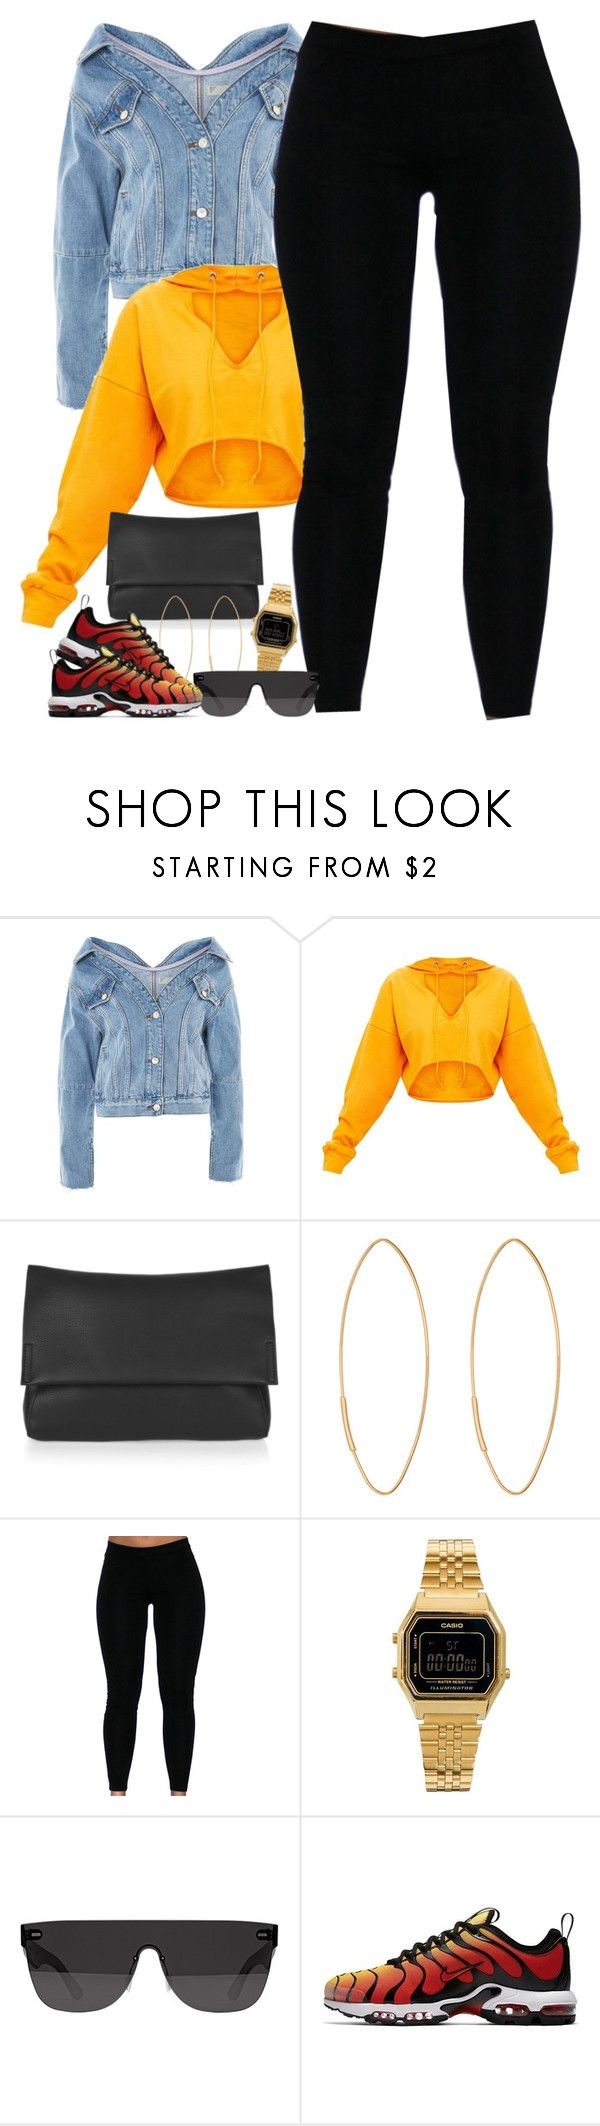 """Untitled #1646"" by power-beauty ❤ liked on Polyvore featuring Topshop, Lana, Casio, RetroSuperFuture and NIKE"